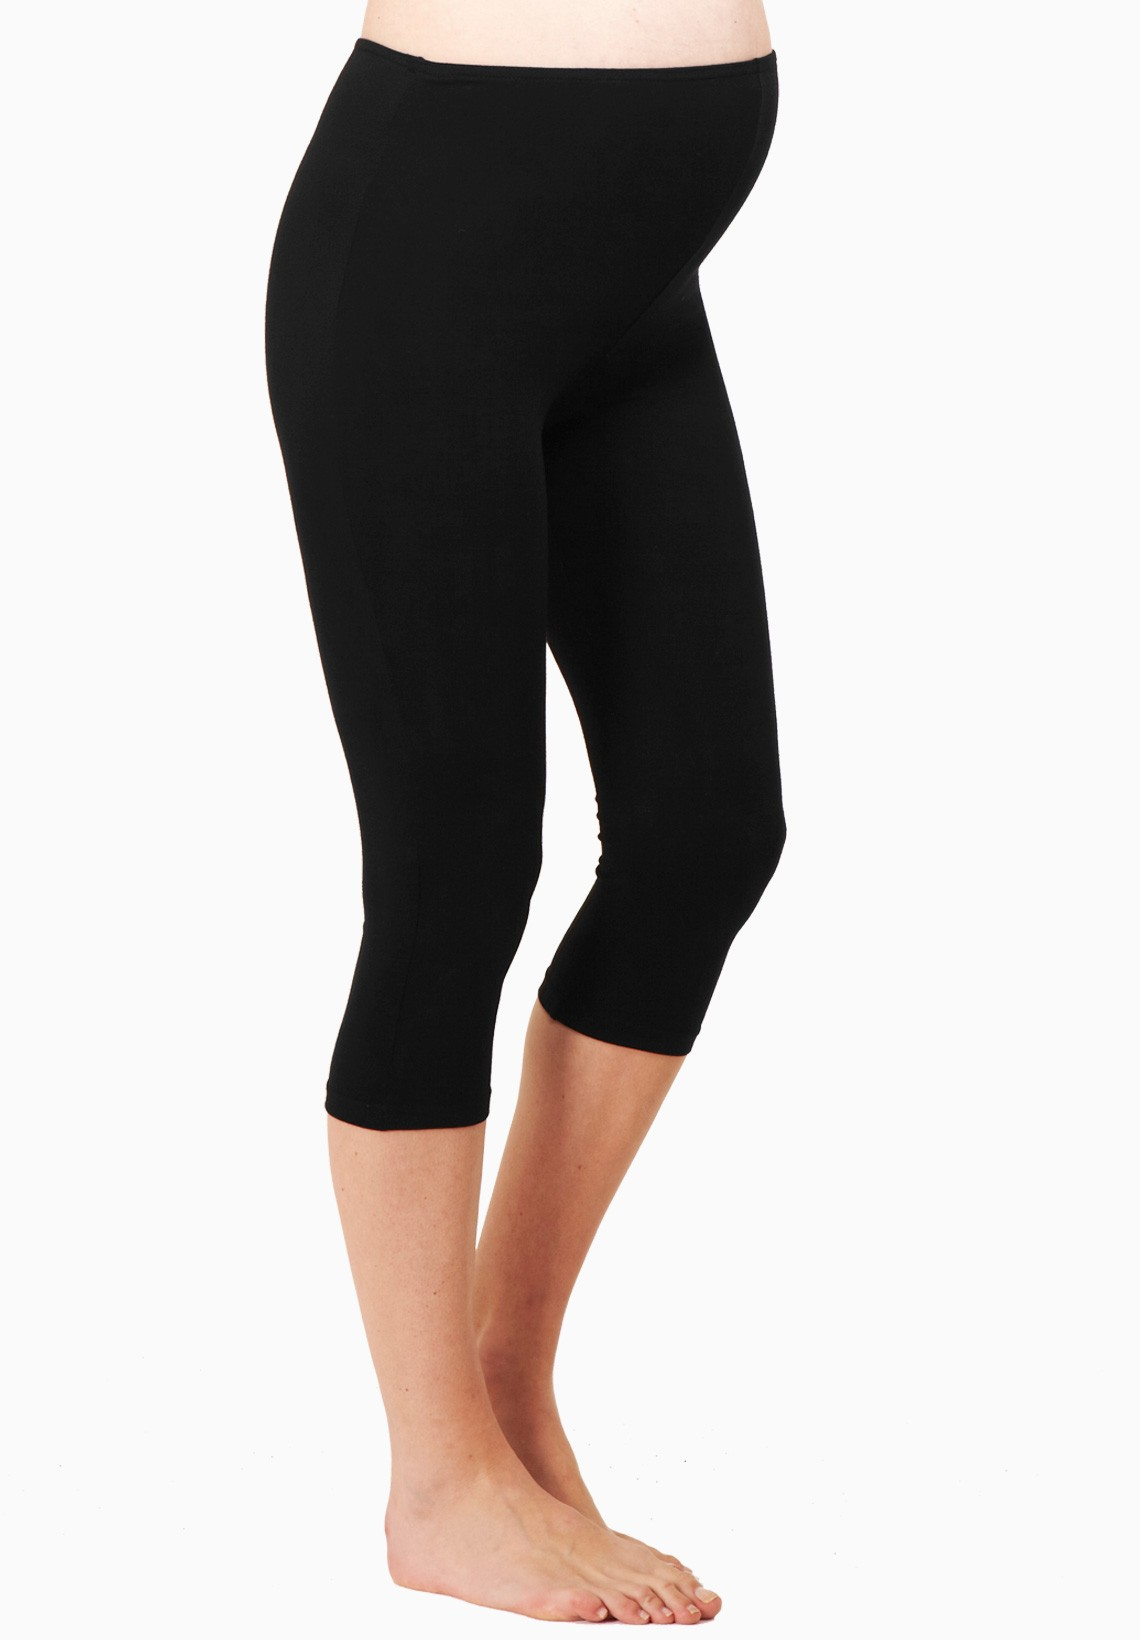 Black over the belly maternity leggings you can use throughout your entire pregnancy. Dress it up or down, or just lounge around in them‰Û_Totally up to you.